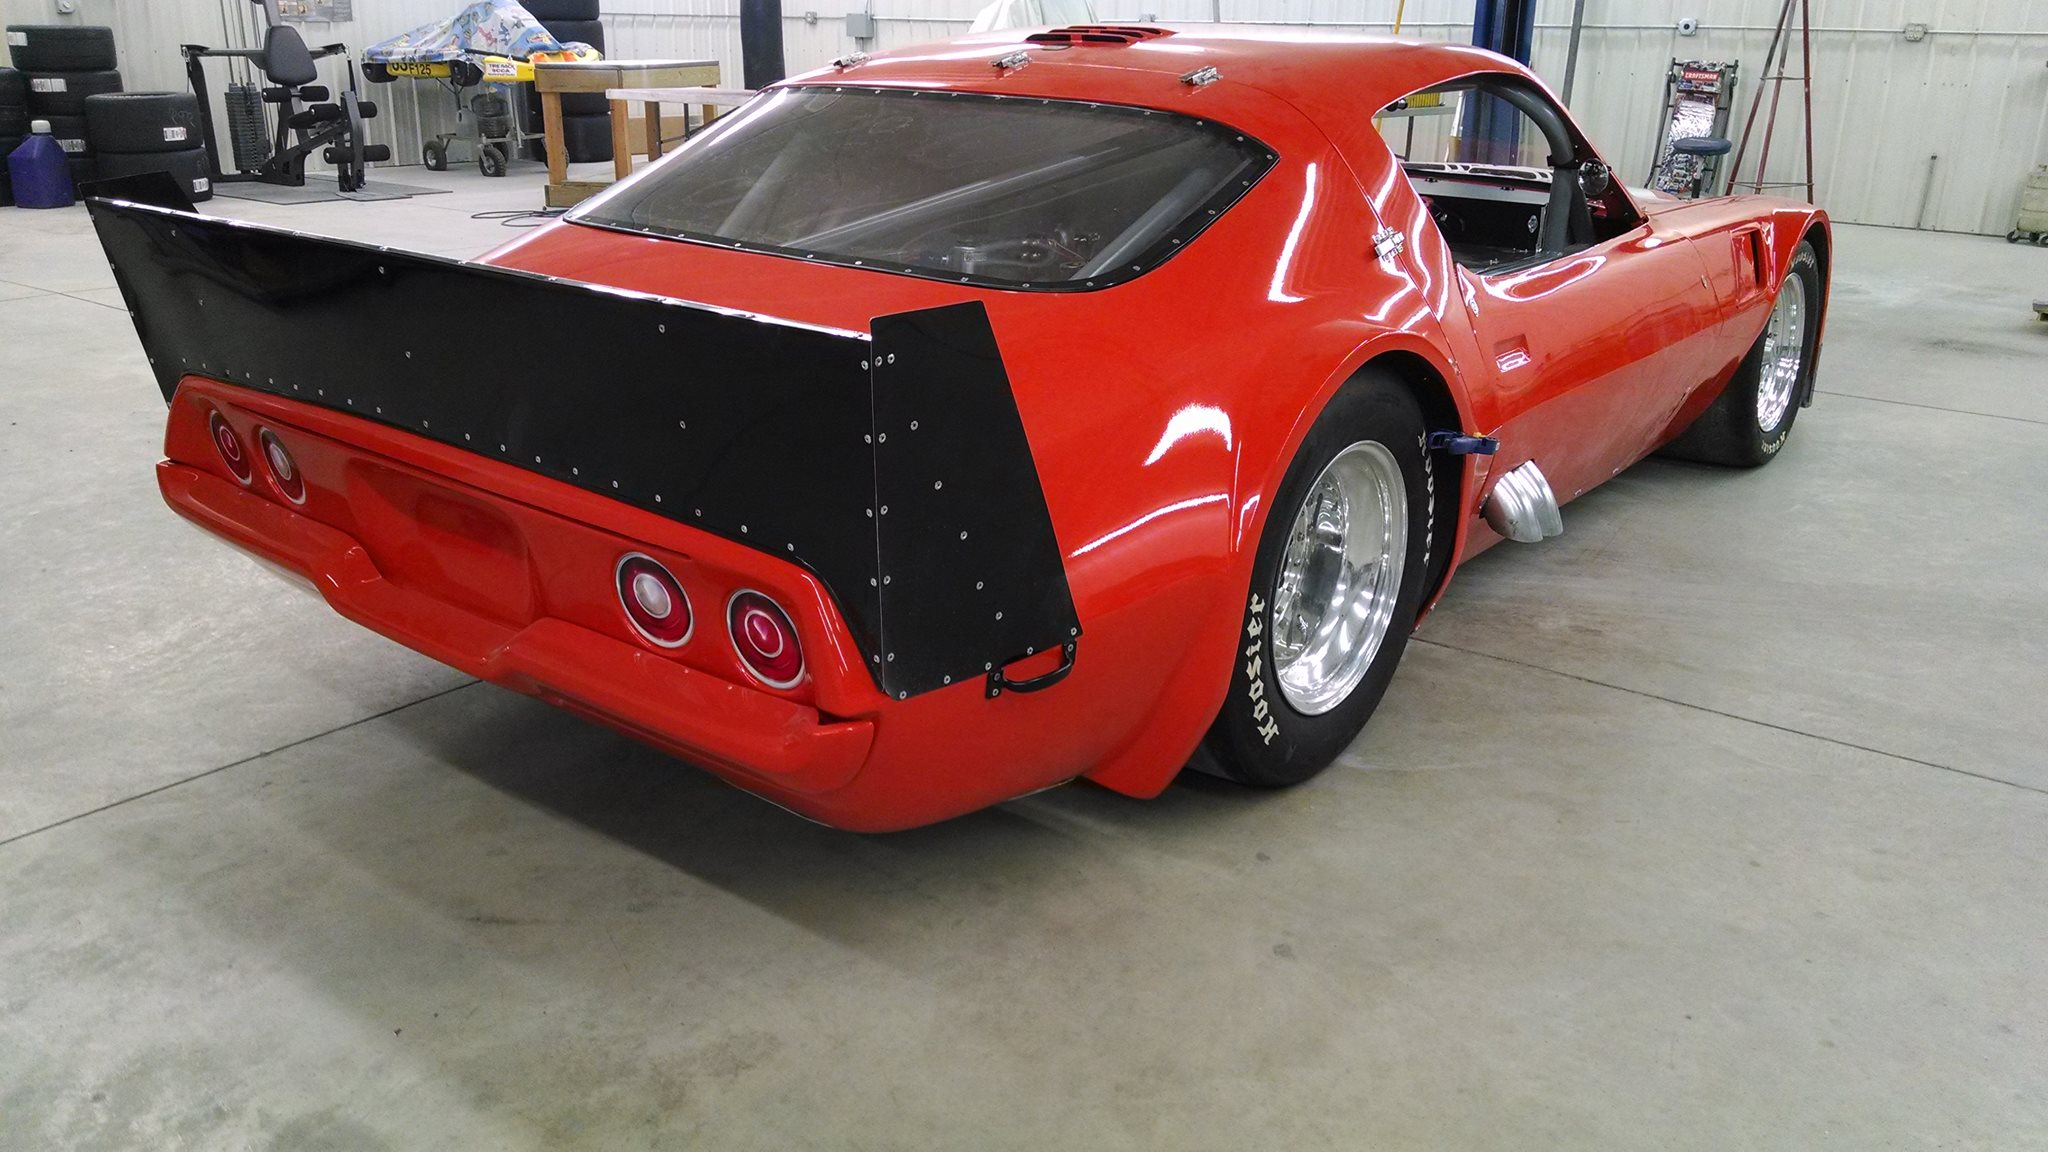 Incredible Ver Mulm Camaro Is Coming To An Autocross Course Near You